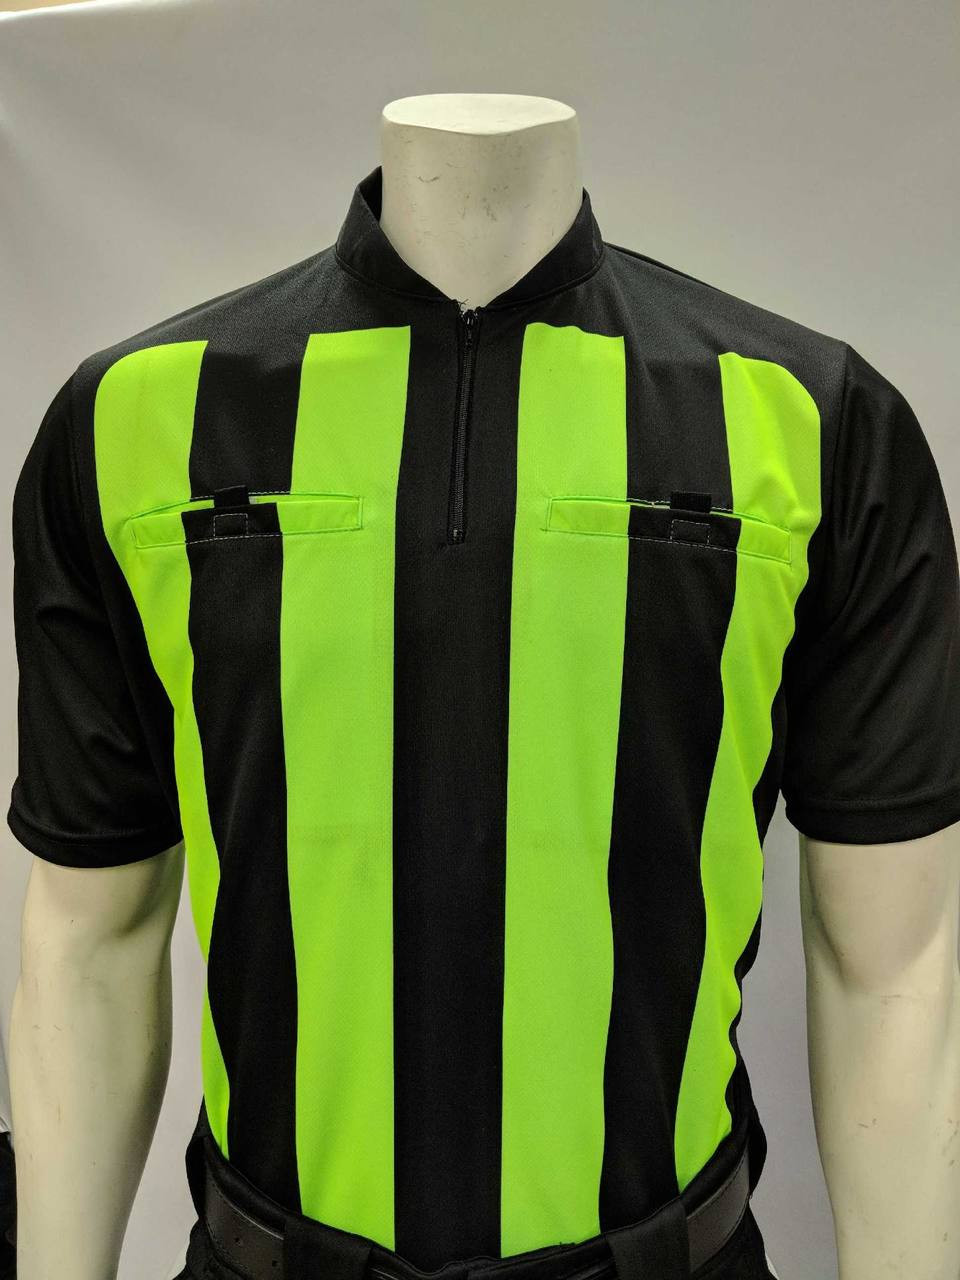 MSHSAA Smitty Made in USA Soccer Referee Shirt-Short Sleeve - Get ... f8c775f38